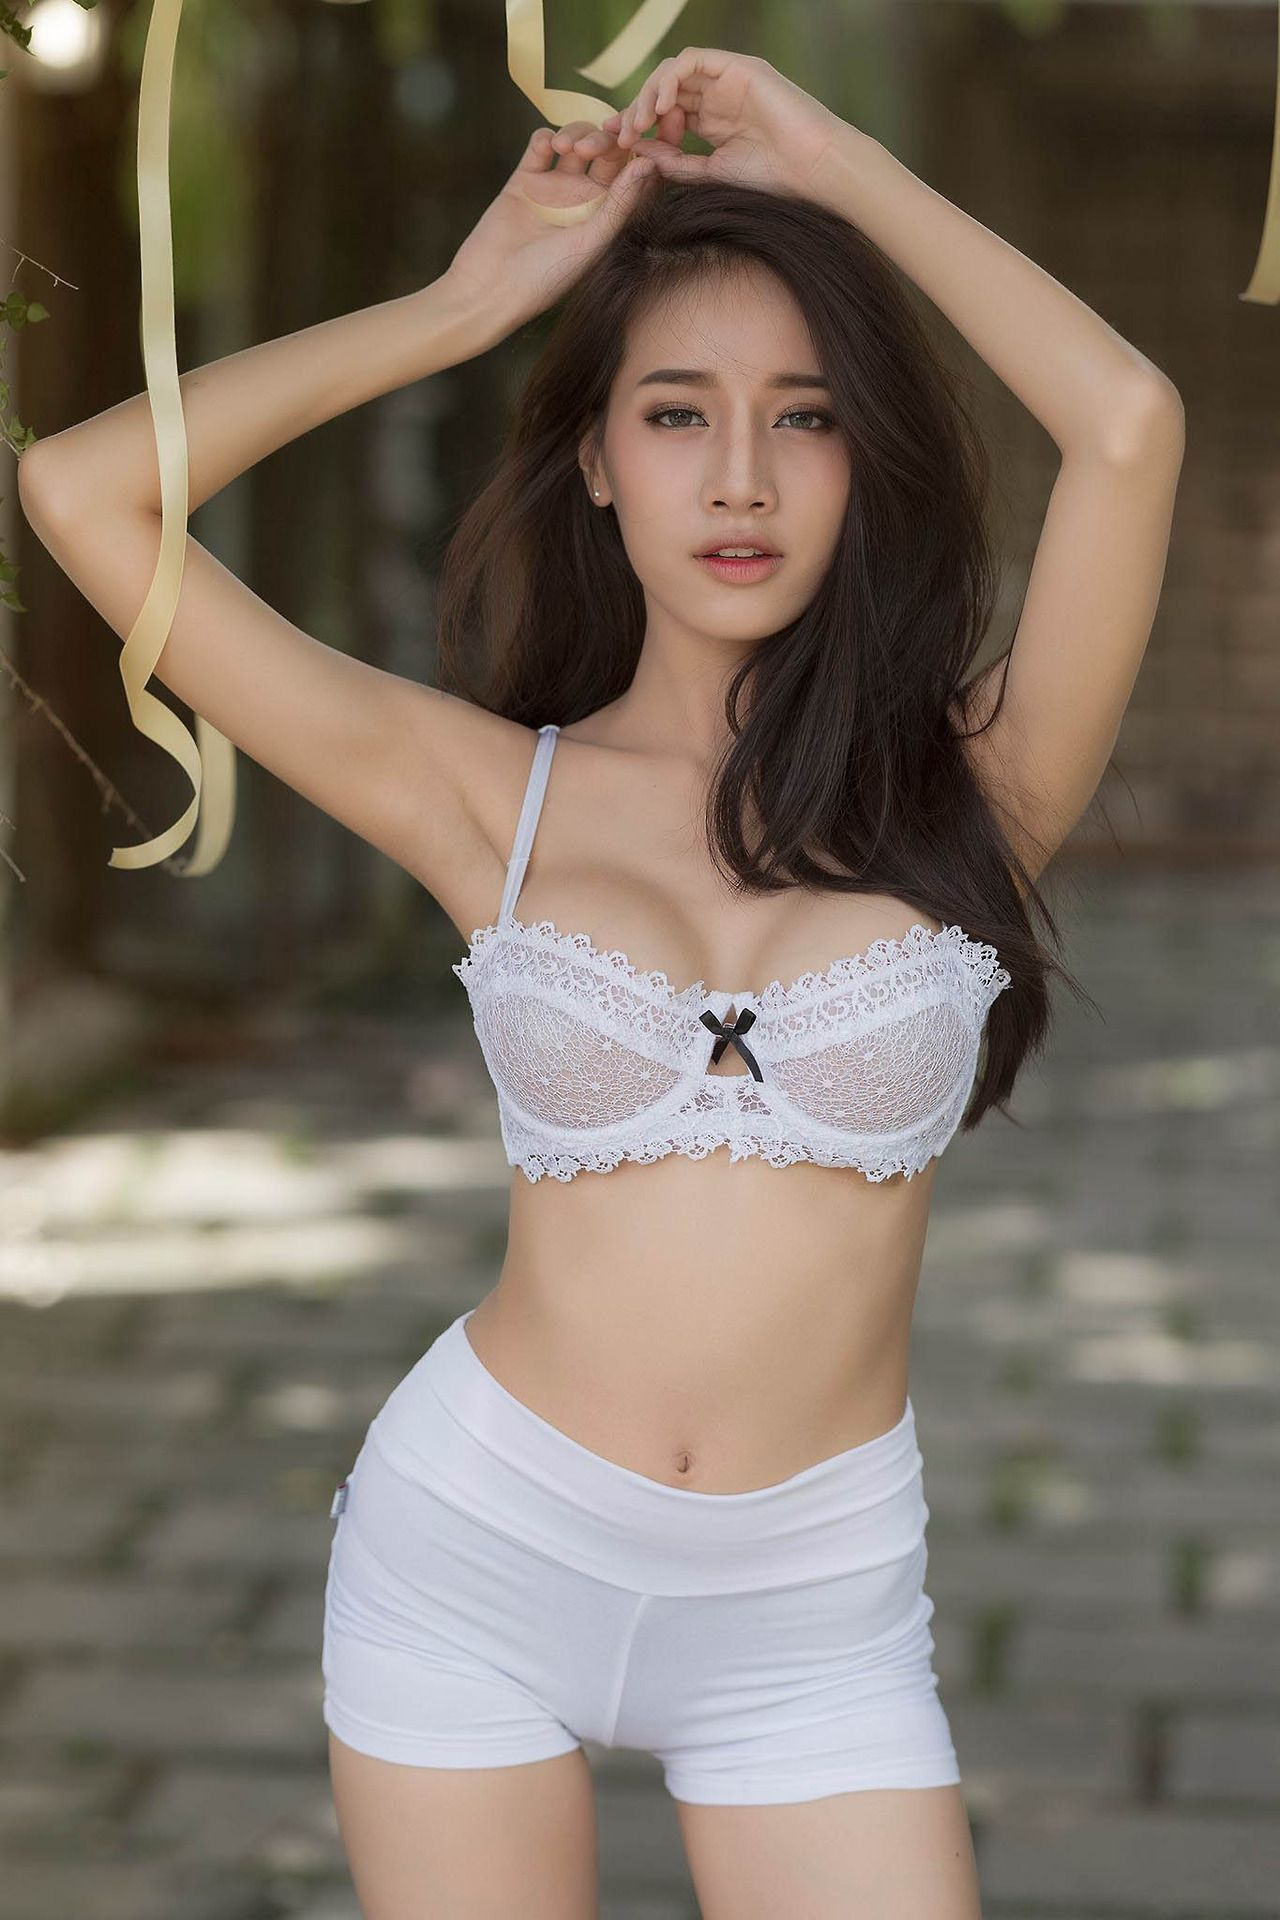 pinterest women Beautiful fuck asian picture Retro